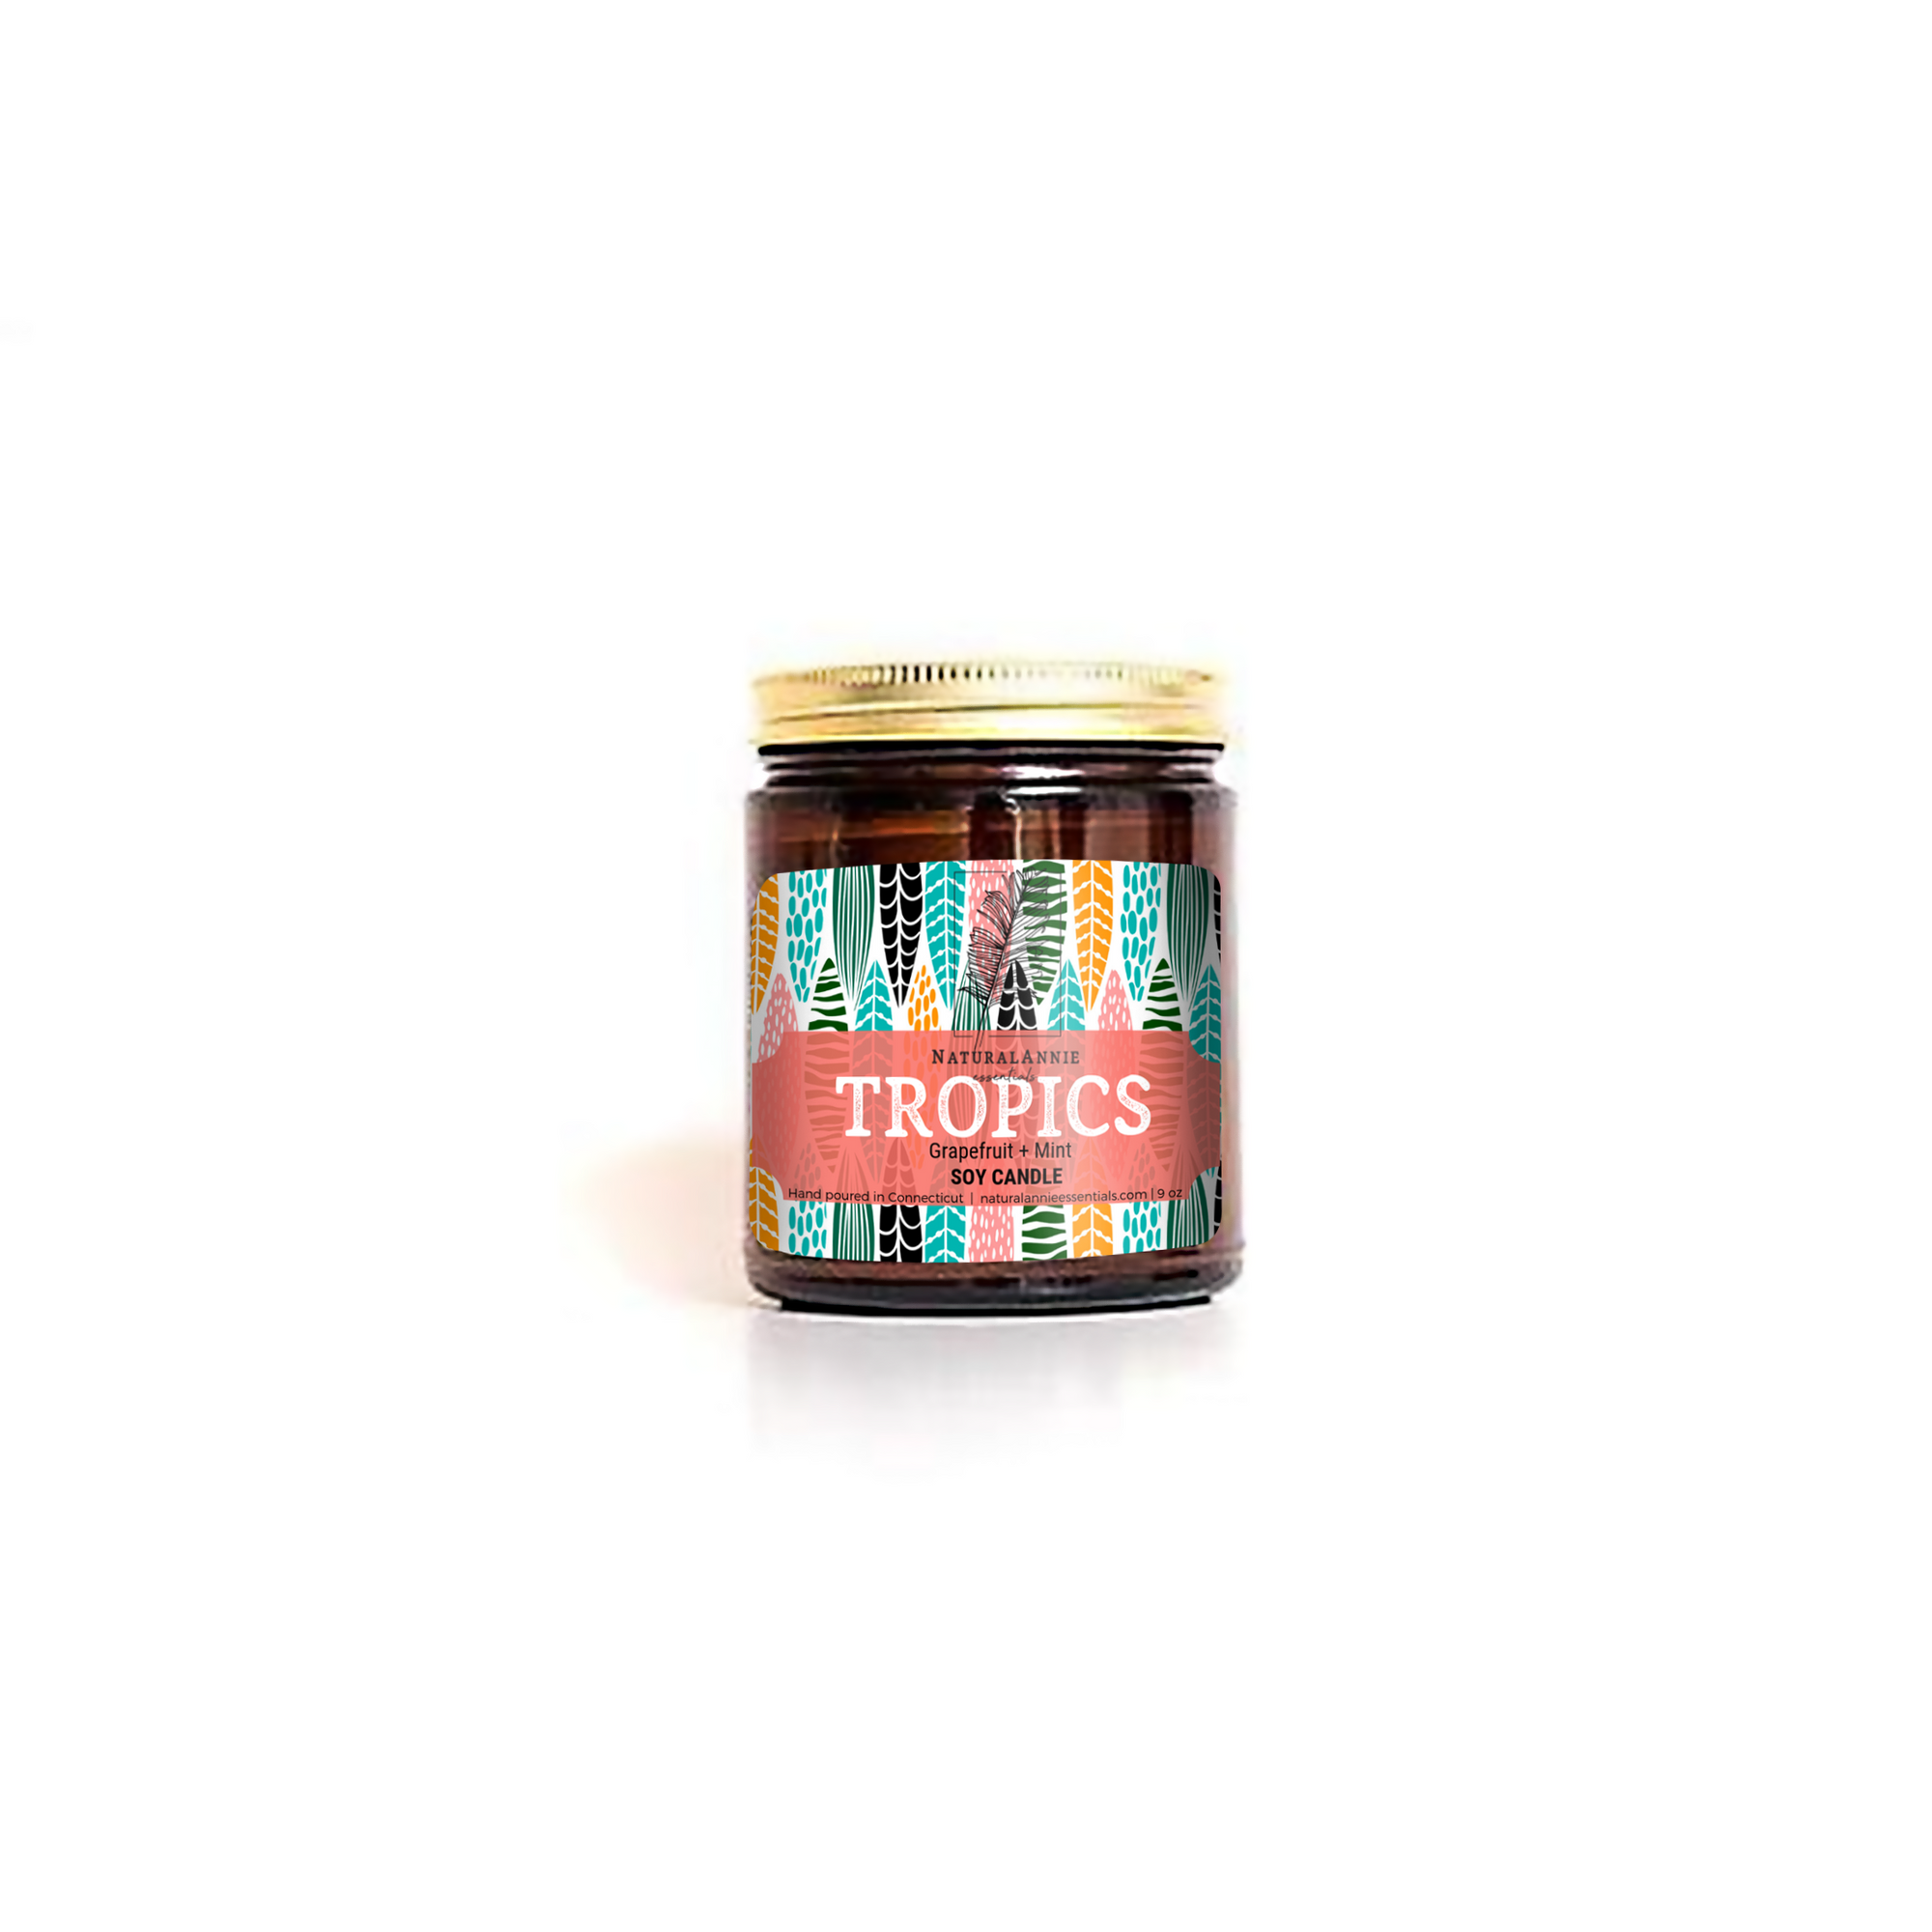 TROPICS: Grapefruit, Rhubarb, & Mint Scented Soy Candle